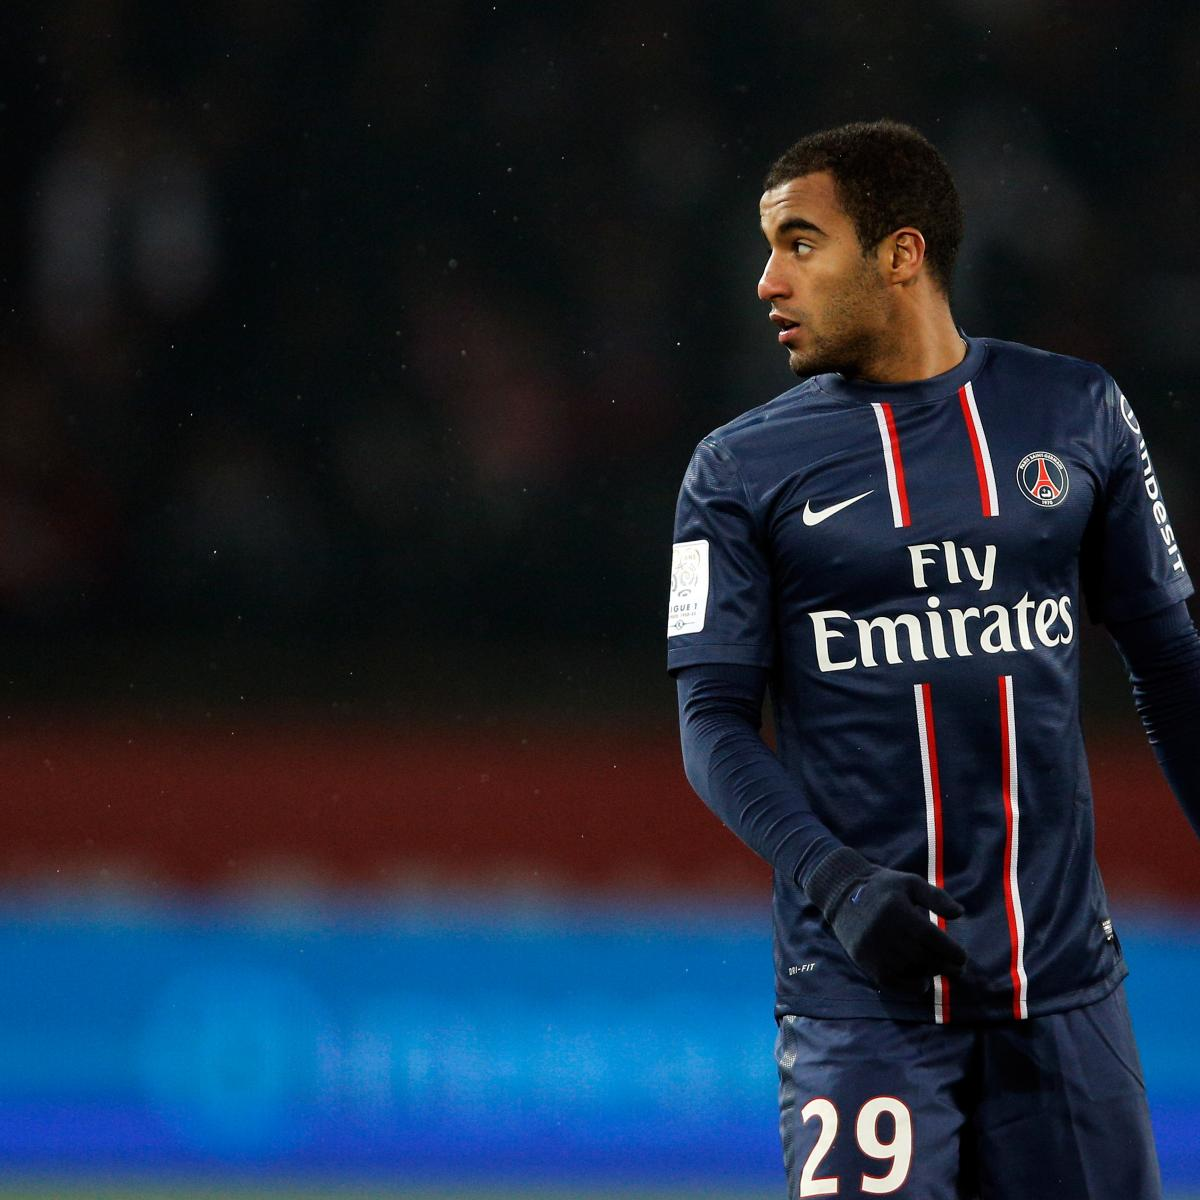 Paris Saint Germain S Lucas Moura Arrives For Tottenham: What If Manchester United Had Signed Lucas Moura, Eden